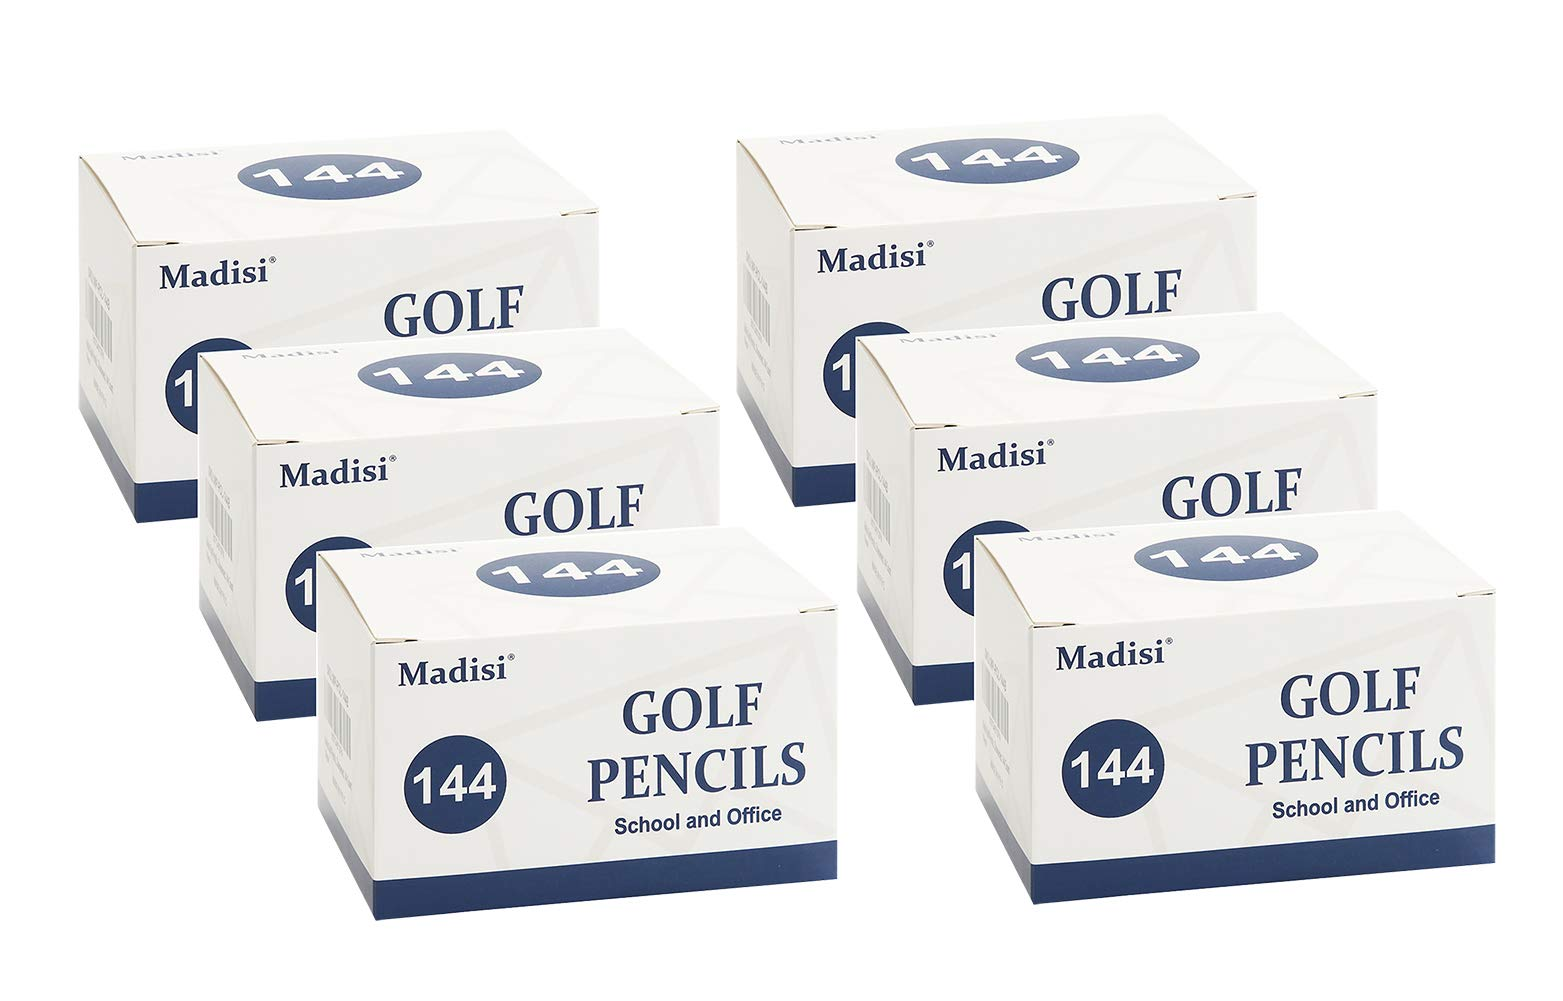 Madisi Golf Pencils, 2 HB Half Pencils, 3.5'' Mini Pencils, Pre-Sharpened, 6 Boxes, 864 Count by Madisi (Image #1)